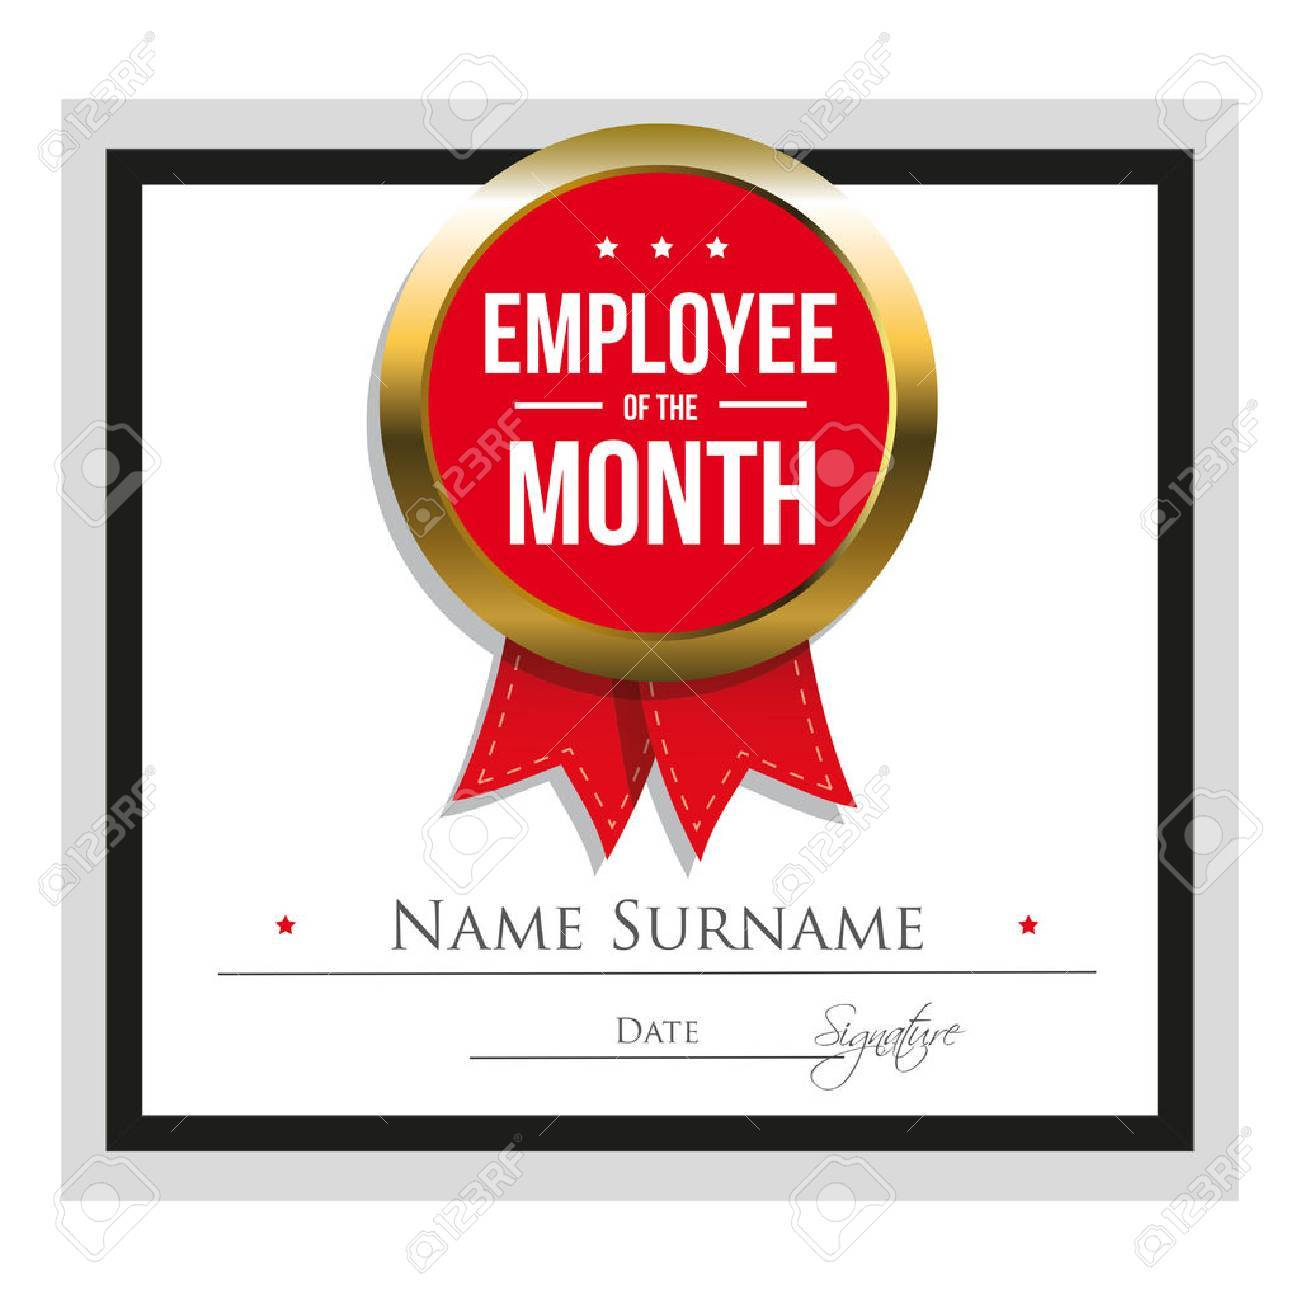 Employee Of The Month Certificate Template Royalty Free Cliparts ...